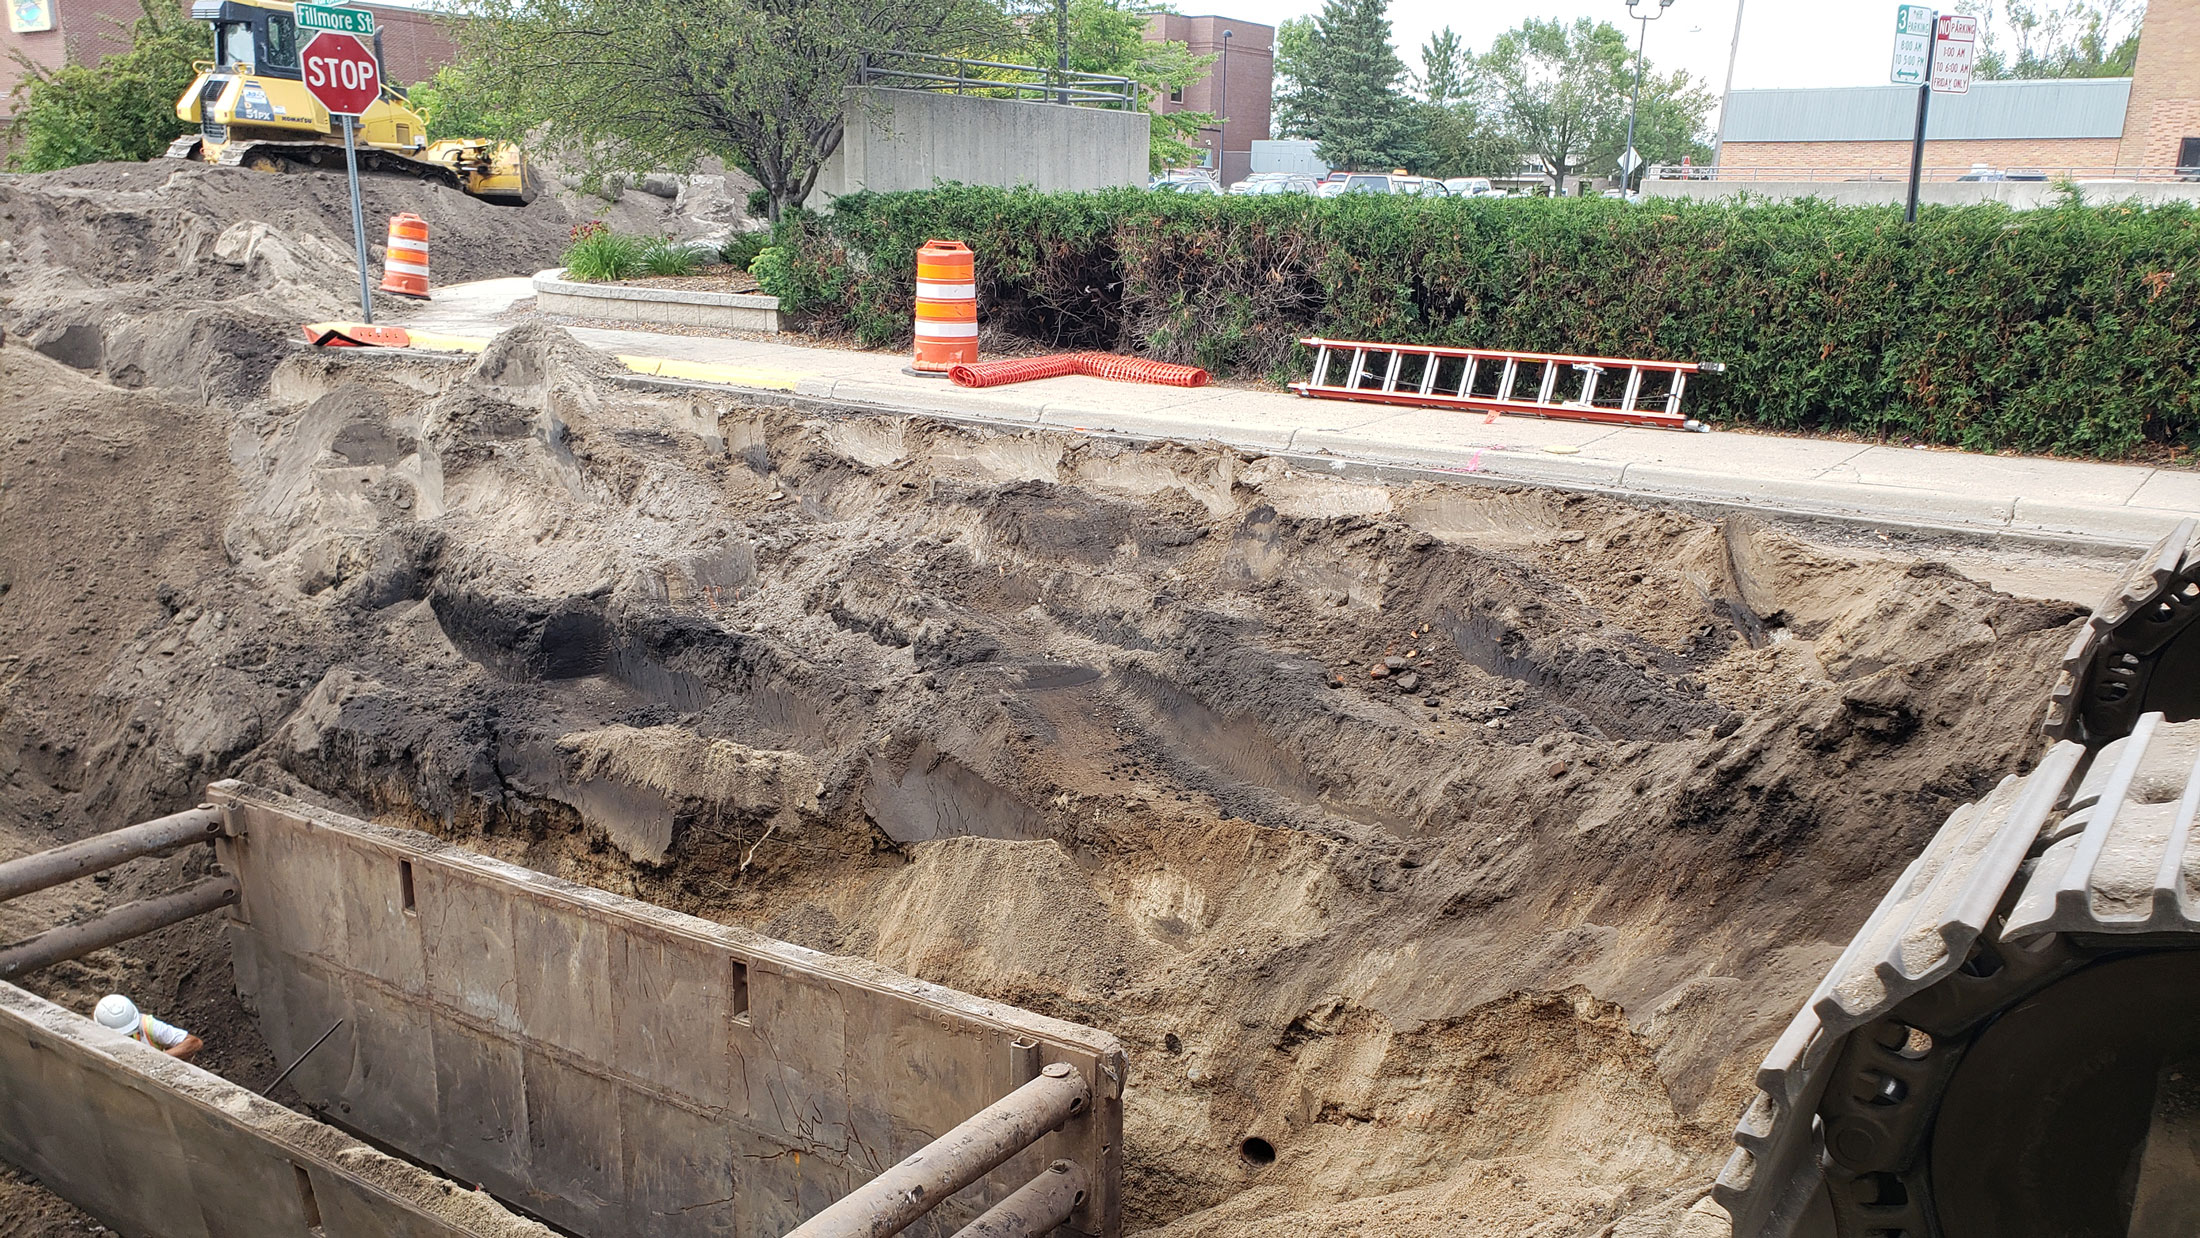 Support structure in place for sewer upgrade on 8th street